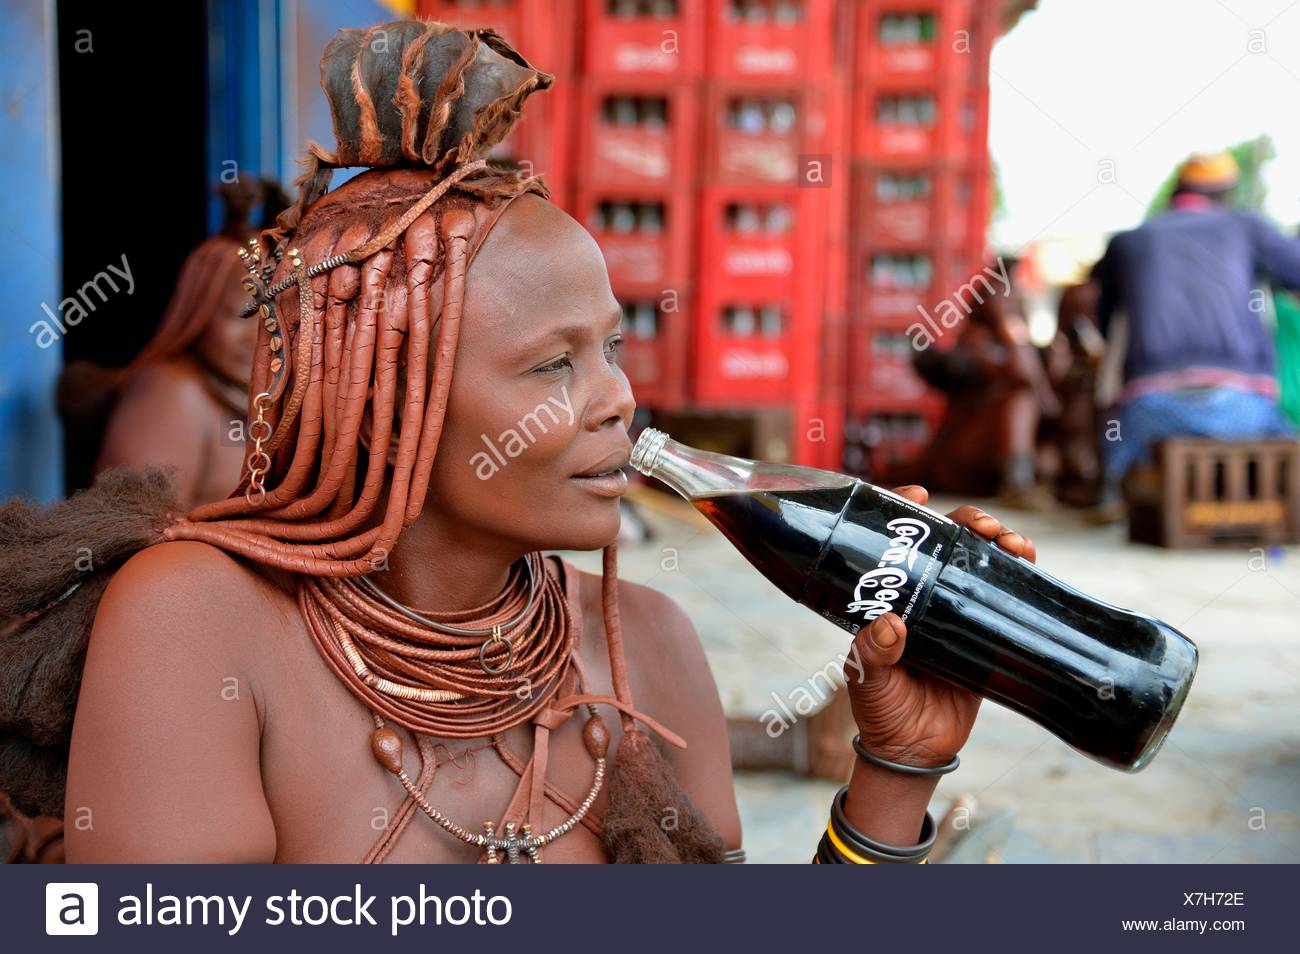 geography / travel, Namibia, traditional garb Himba woman drinking Coca Cola, bar 'Champ Style', Opuwo, Kaokoveld, Additional-Rights-Clearance-Info-Not-Available - Stock Image